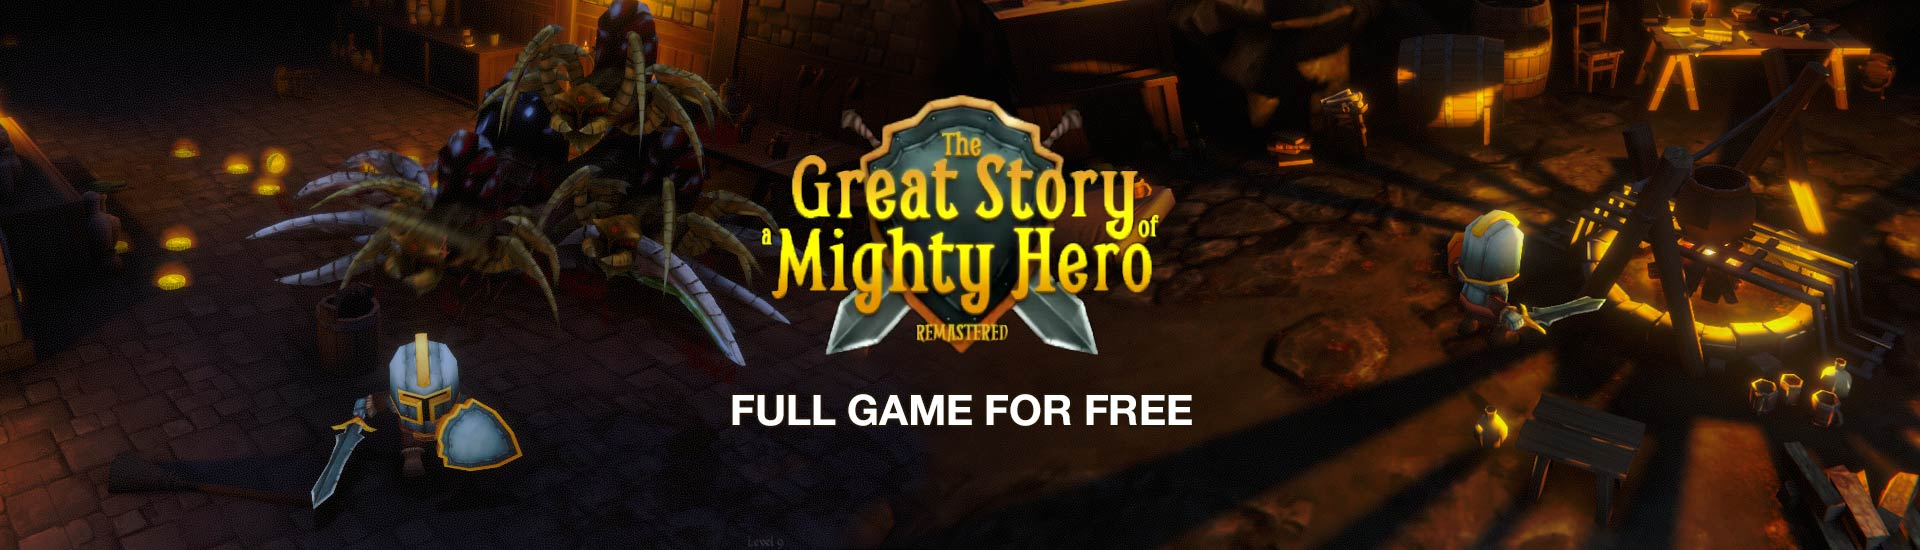 The Great Story of a Mighty Hero - Remastered cover